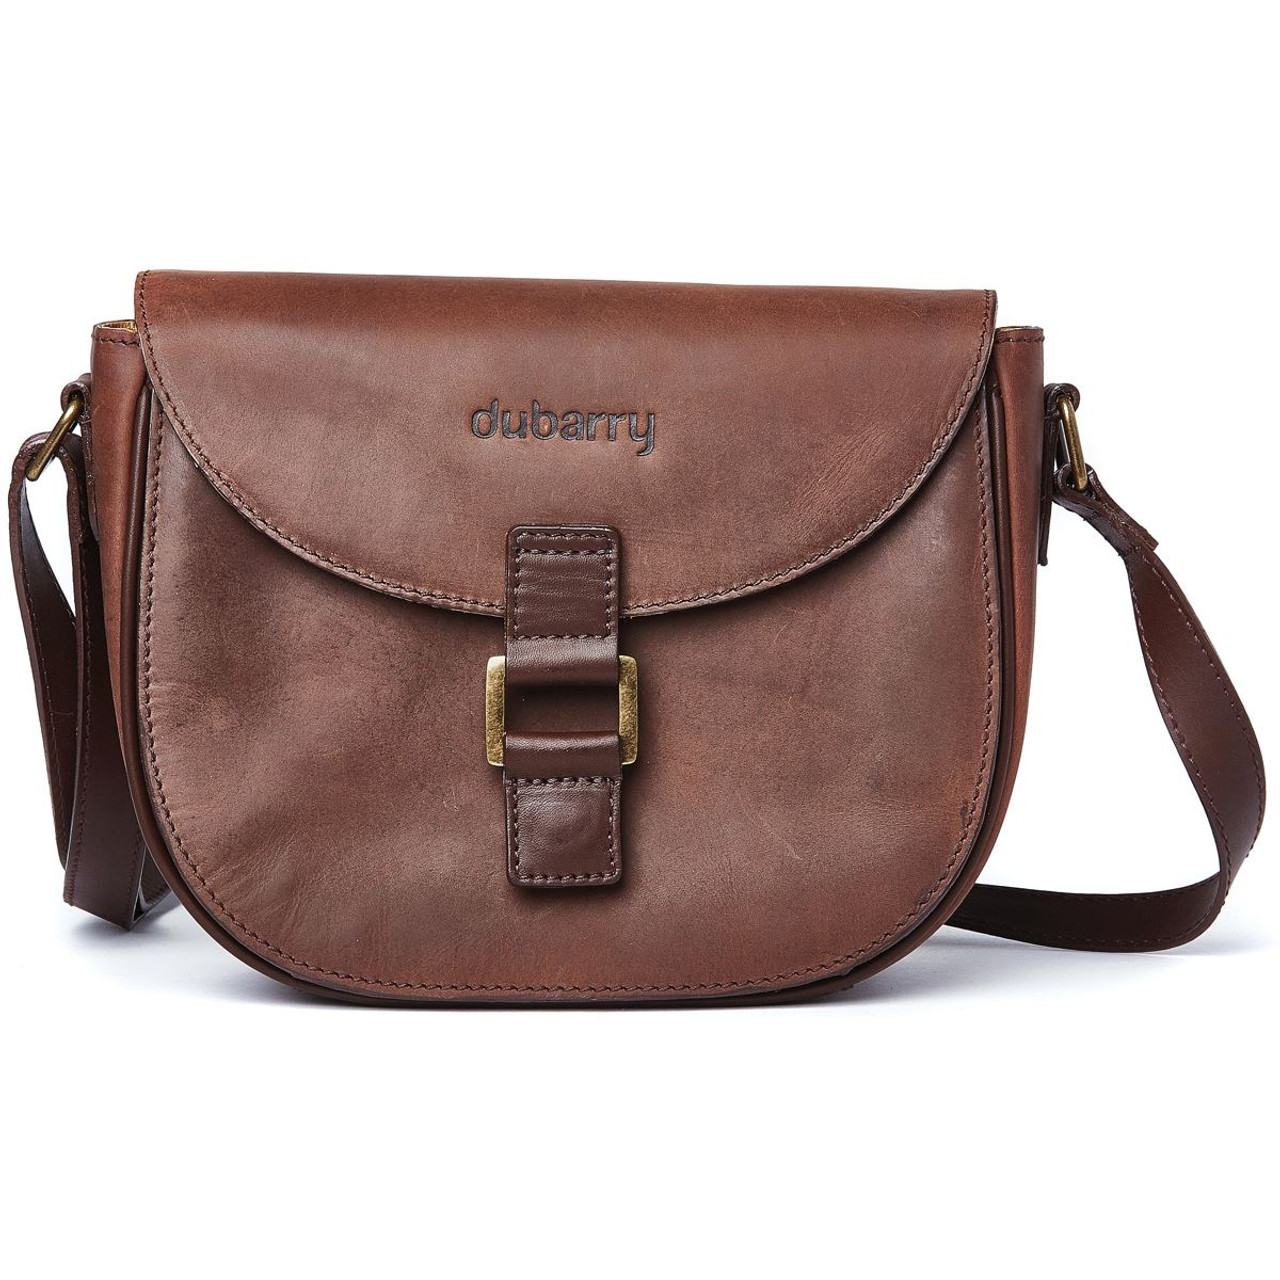 Dubarry Ballybay Cross Body Bag in Old Rum